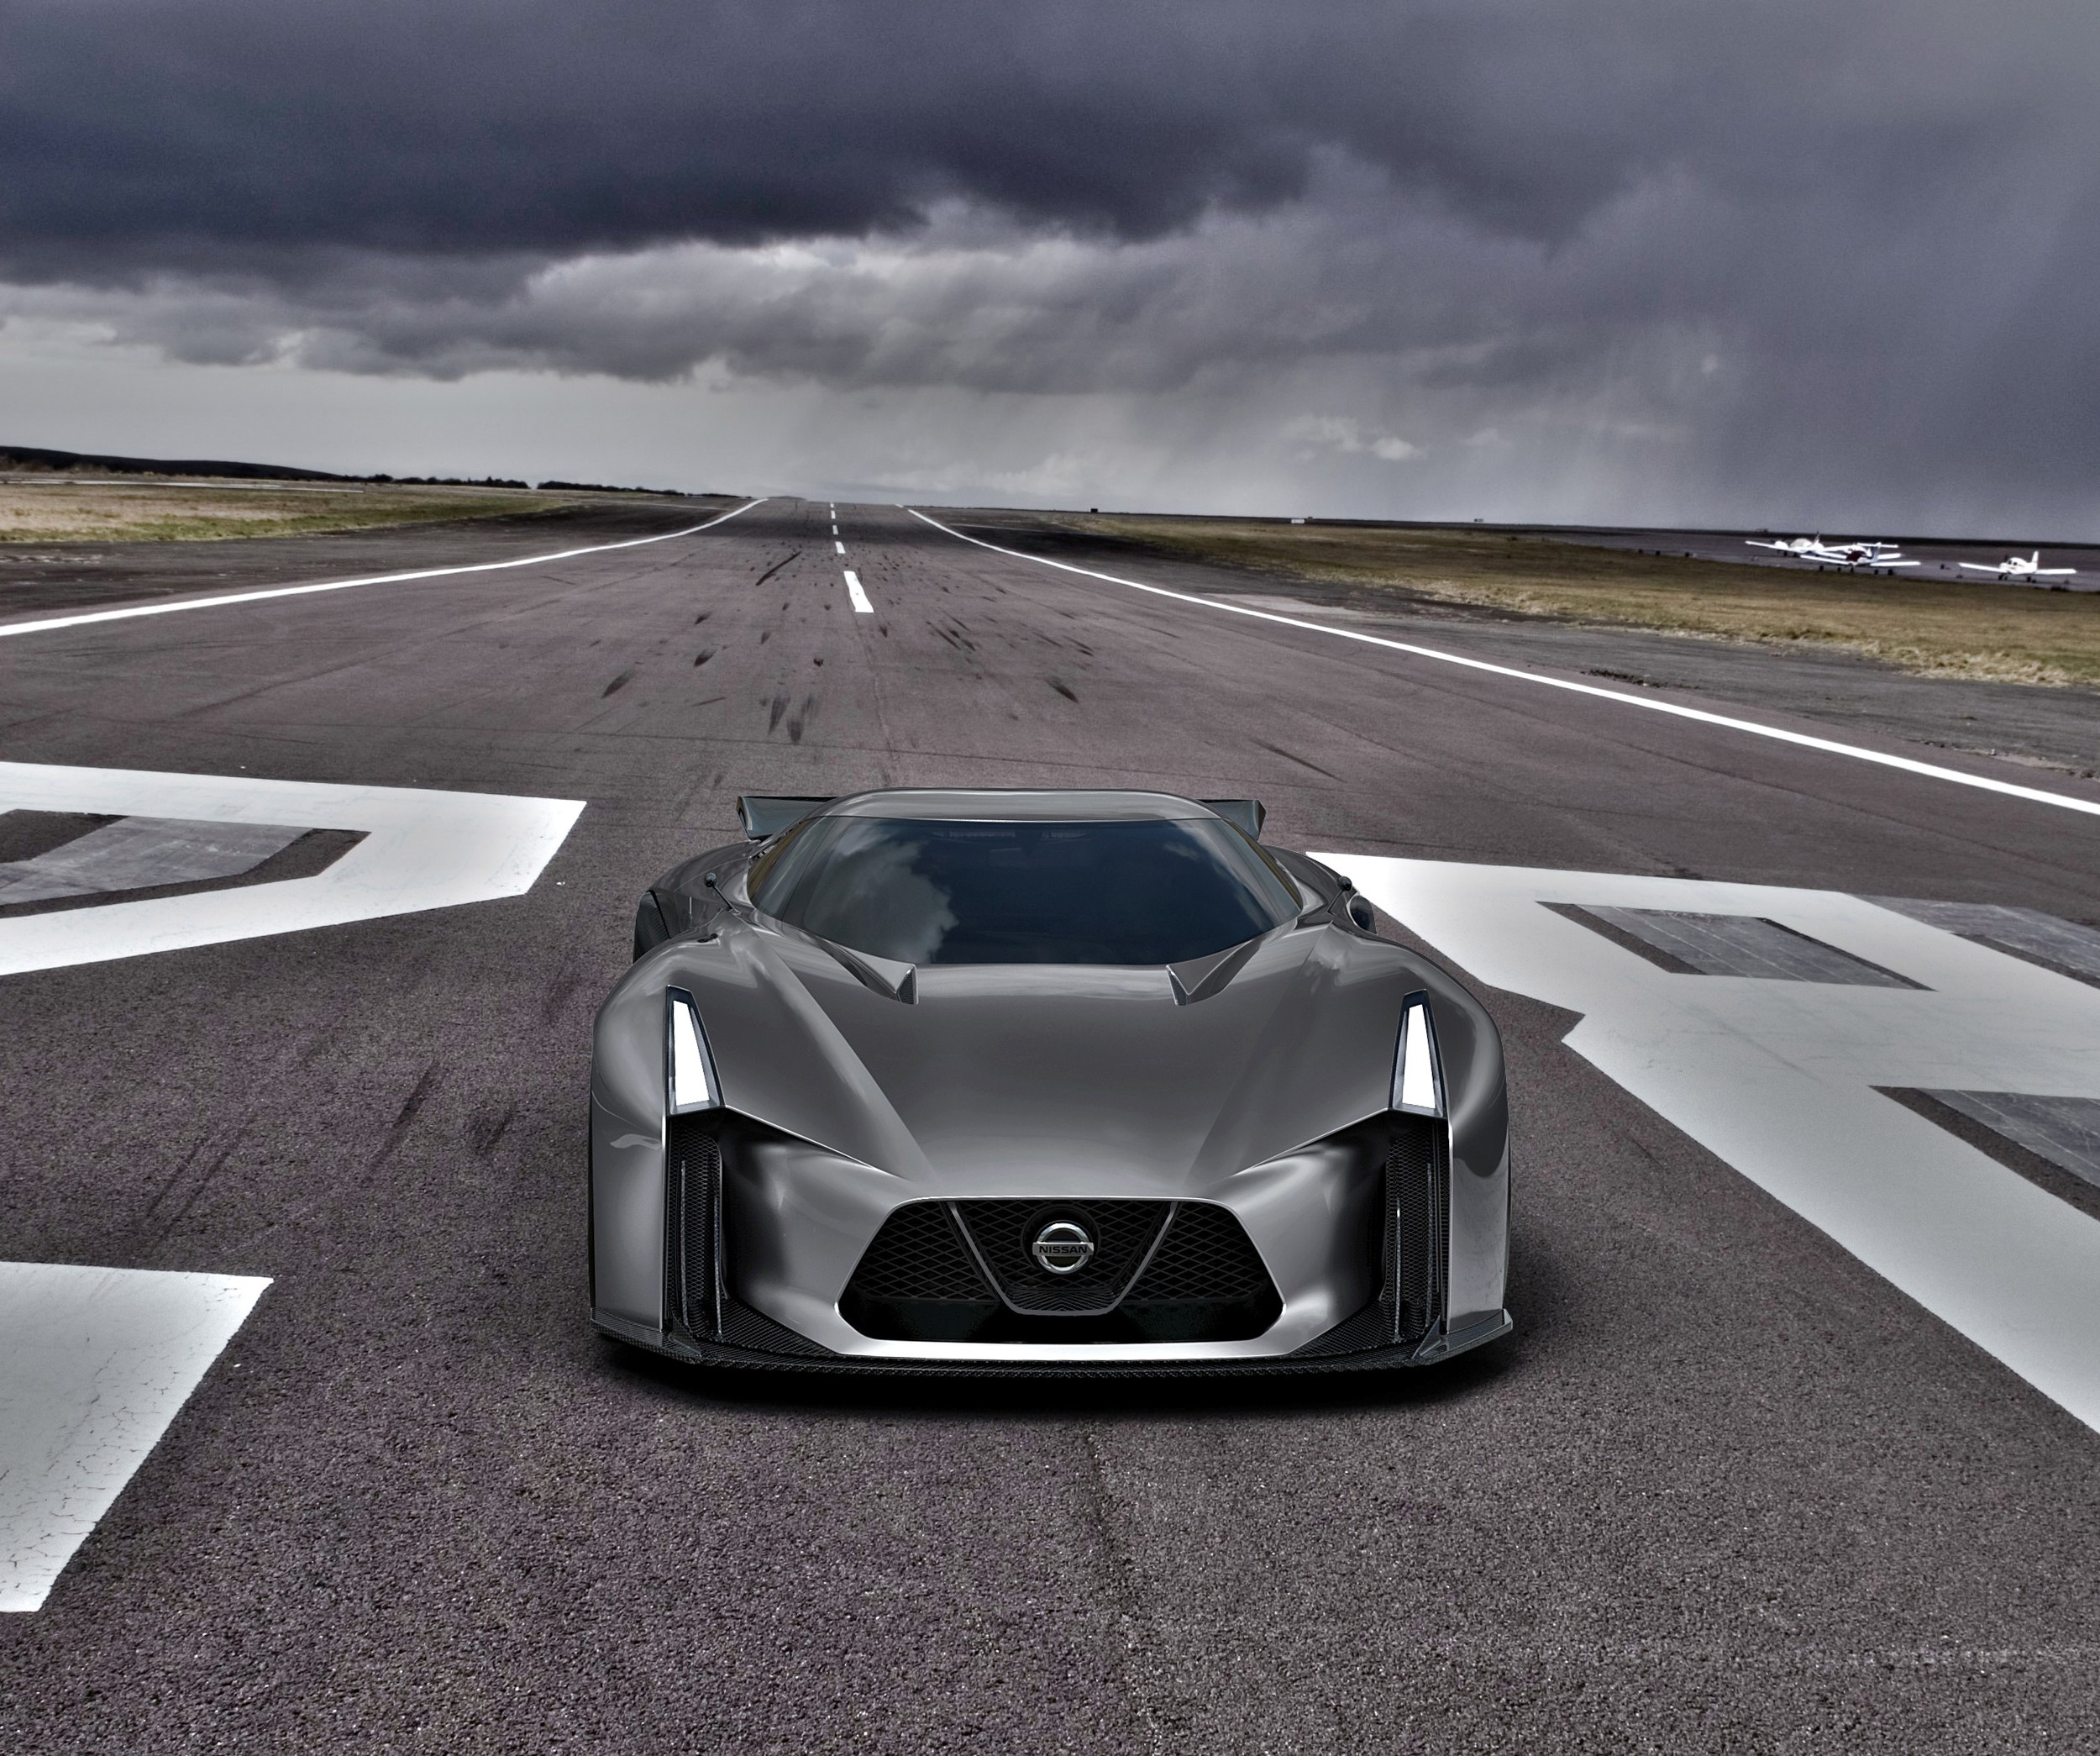 2014_Nissan_Concept_2020_Vision_Gran_Turismo_006_9109.jpg